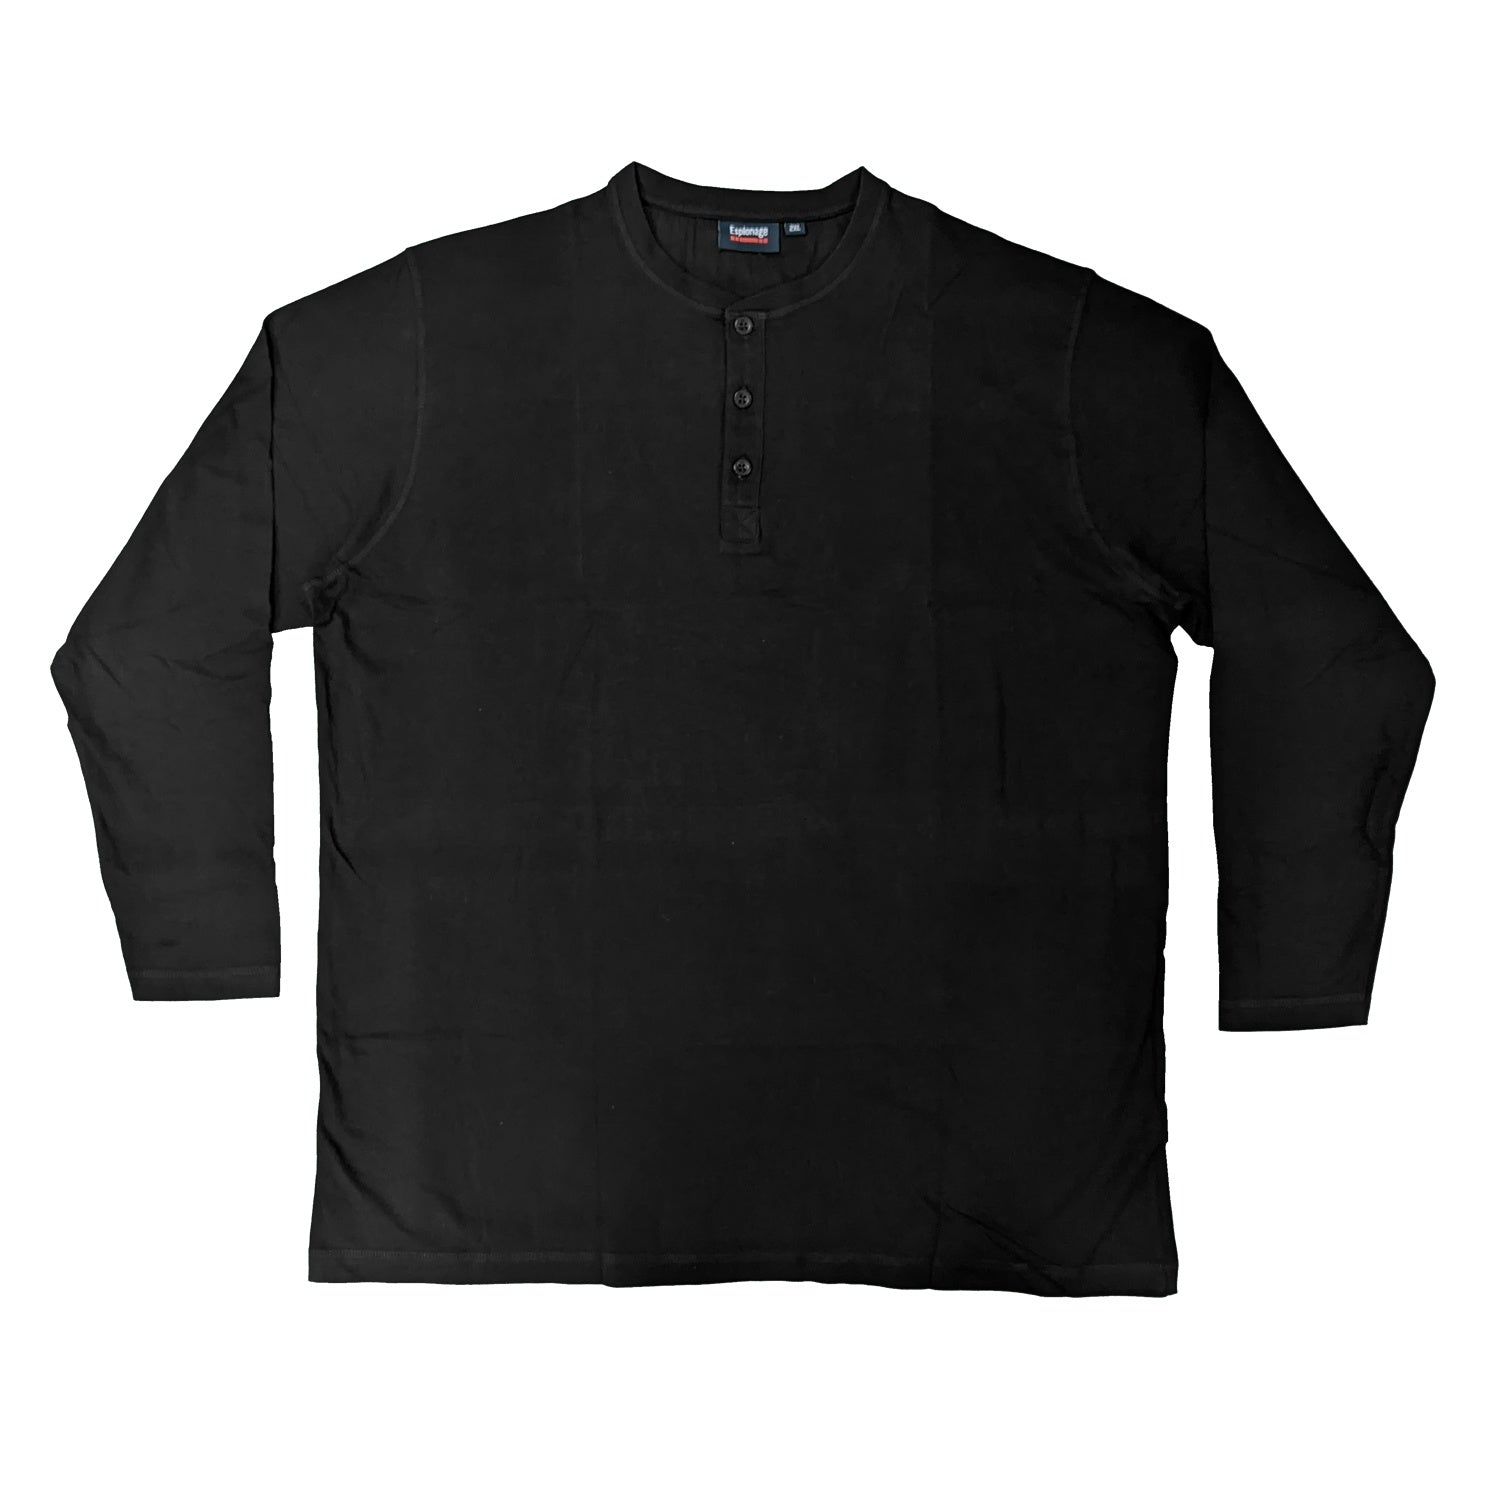 Espionage Long Sleeve Grandad Tee - T310 - Black 1